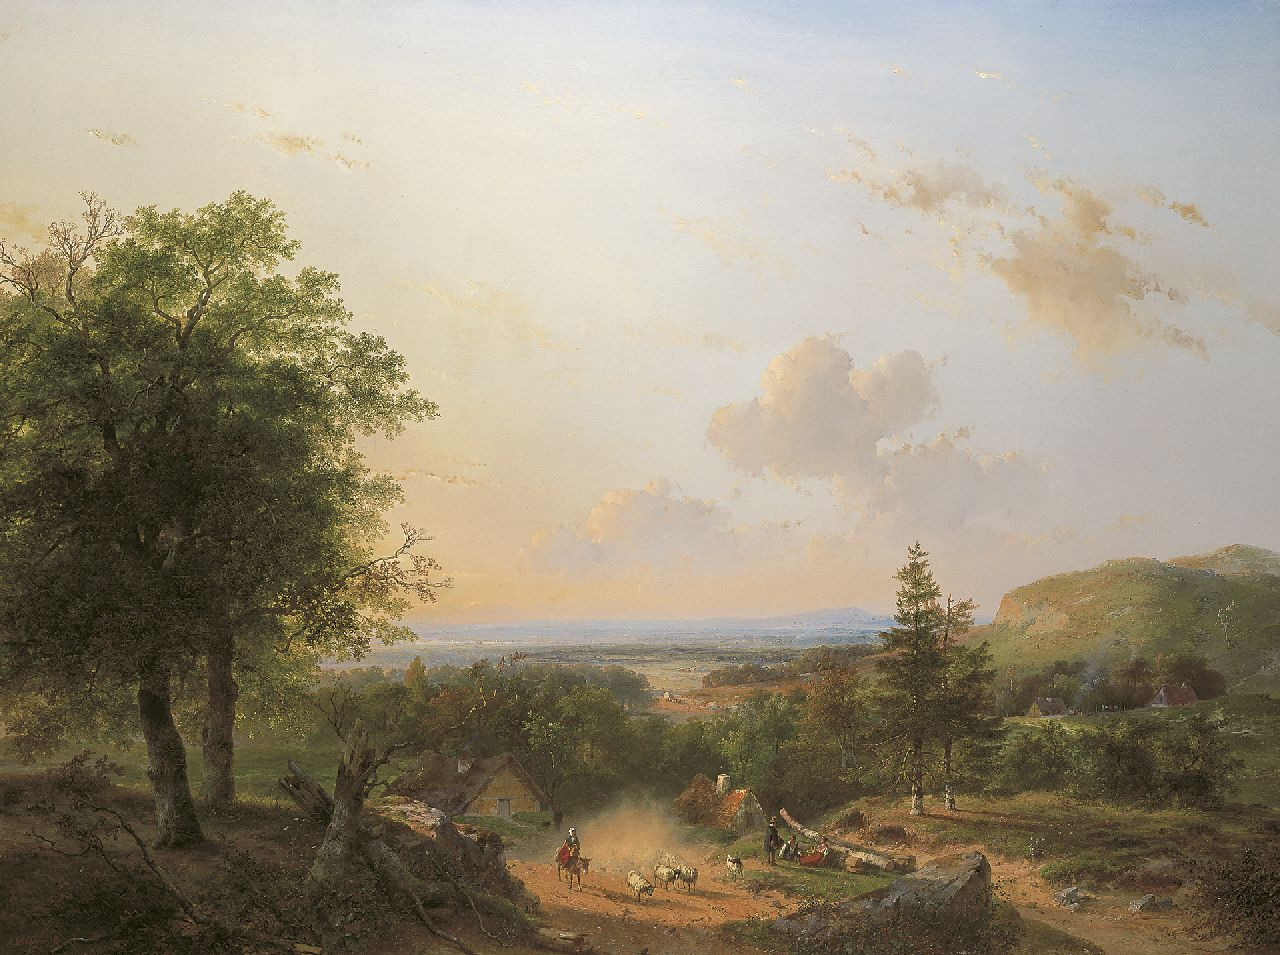 Schelfhout A.  | Andreas Schelfhout | Paintings offered for sale | A shepherdess and her flock in a hilly summer landscape, oil on canvas 110.4 x 146.0 cm, signed l.l. and painted 1849